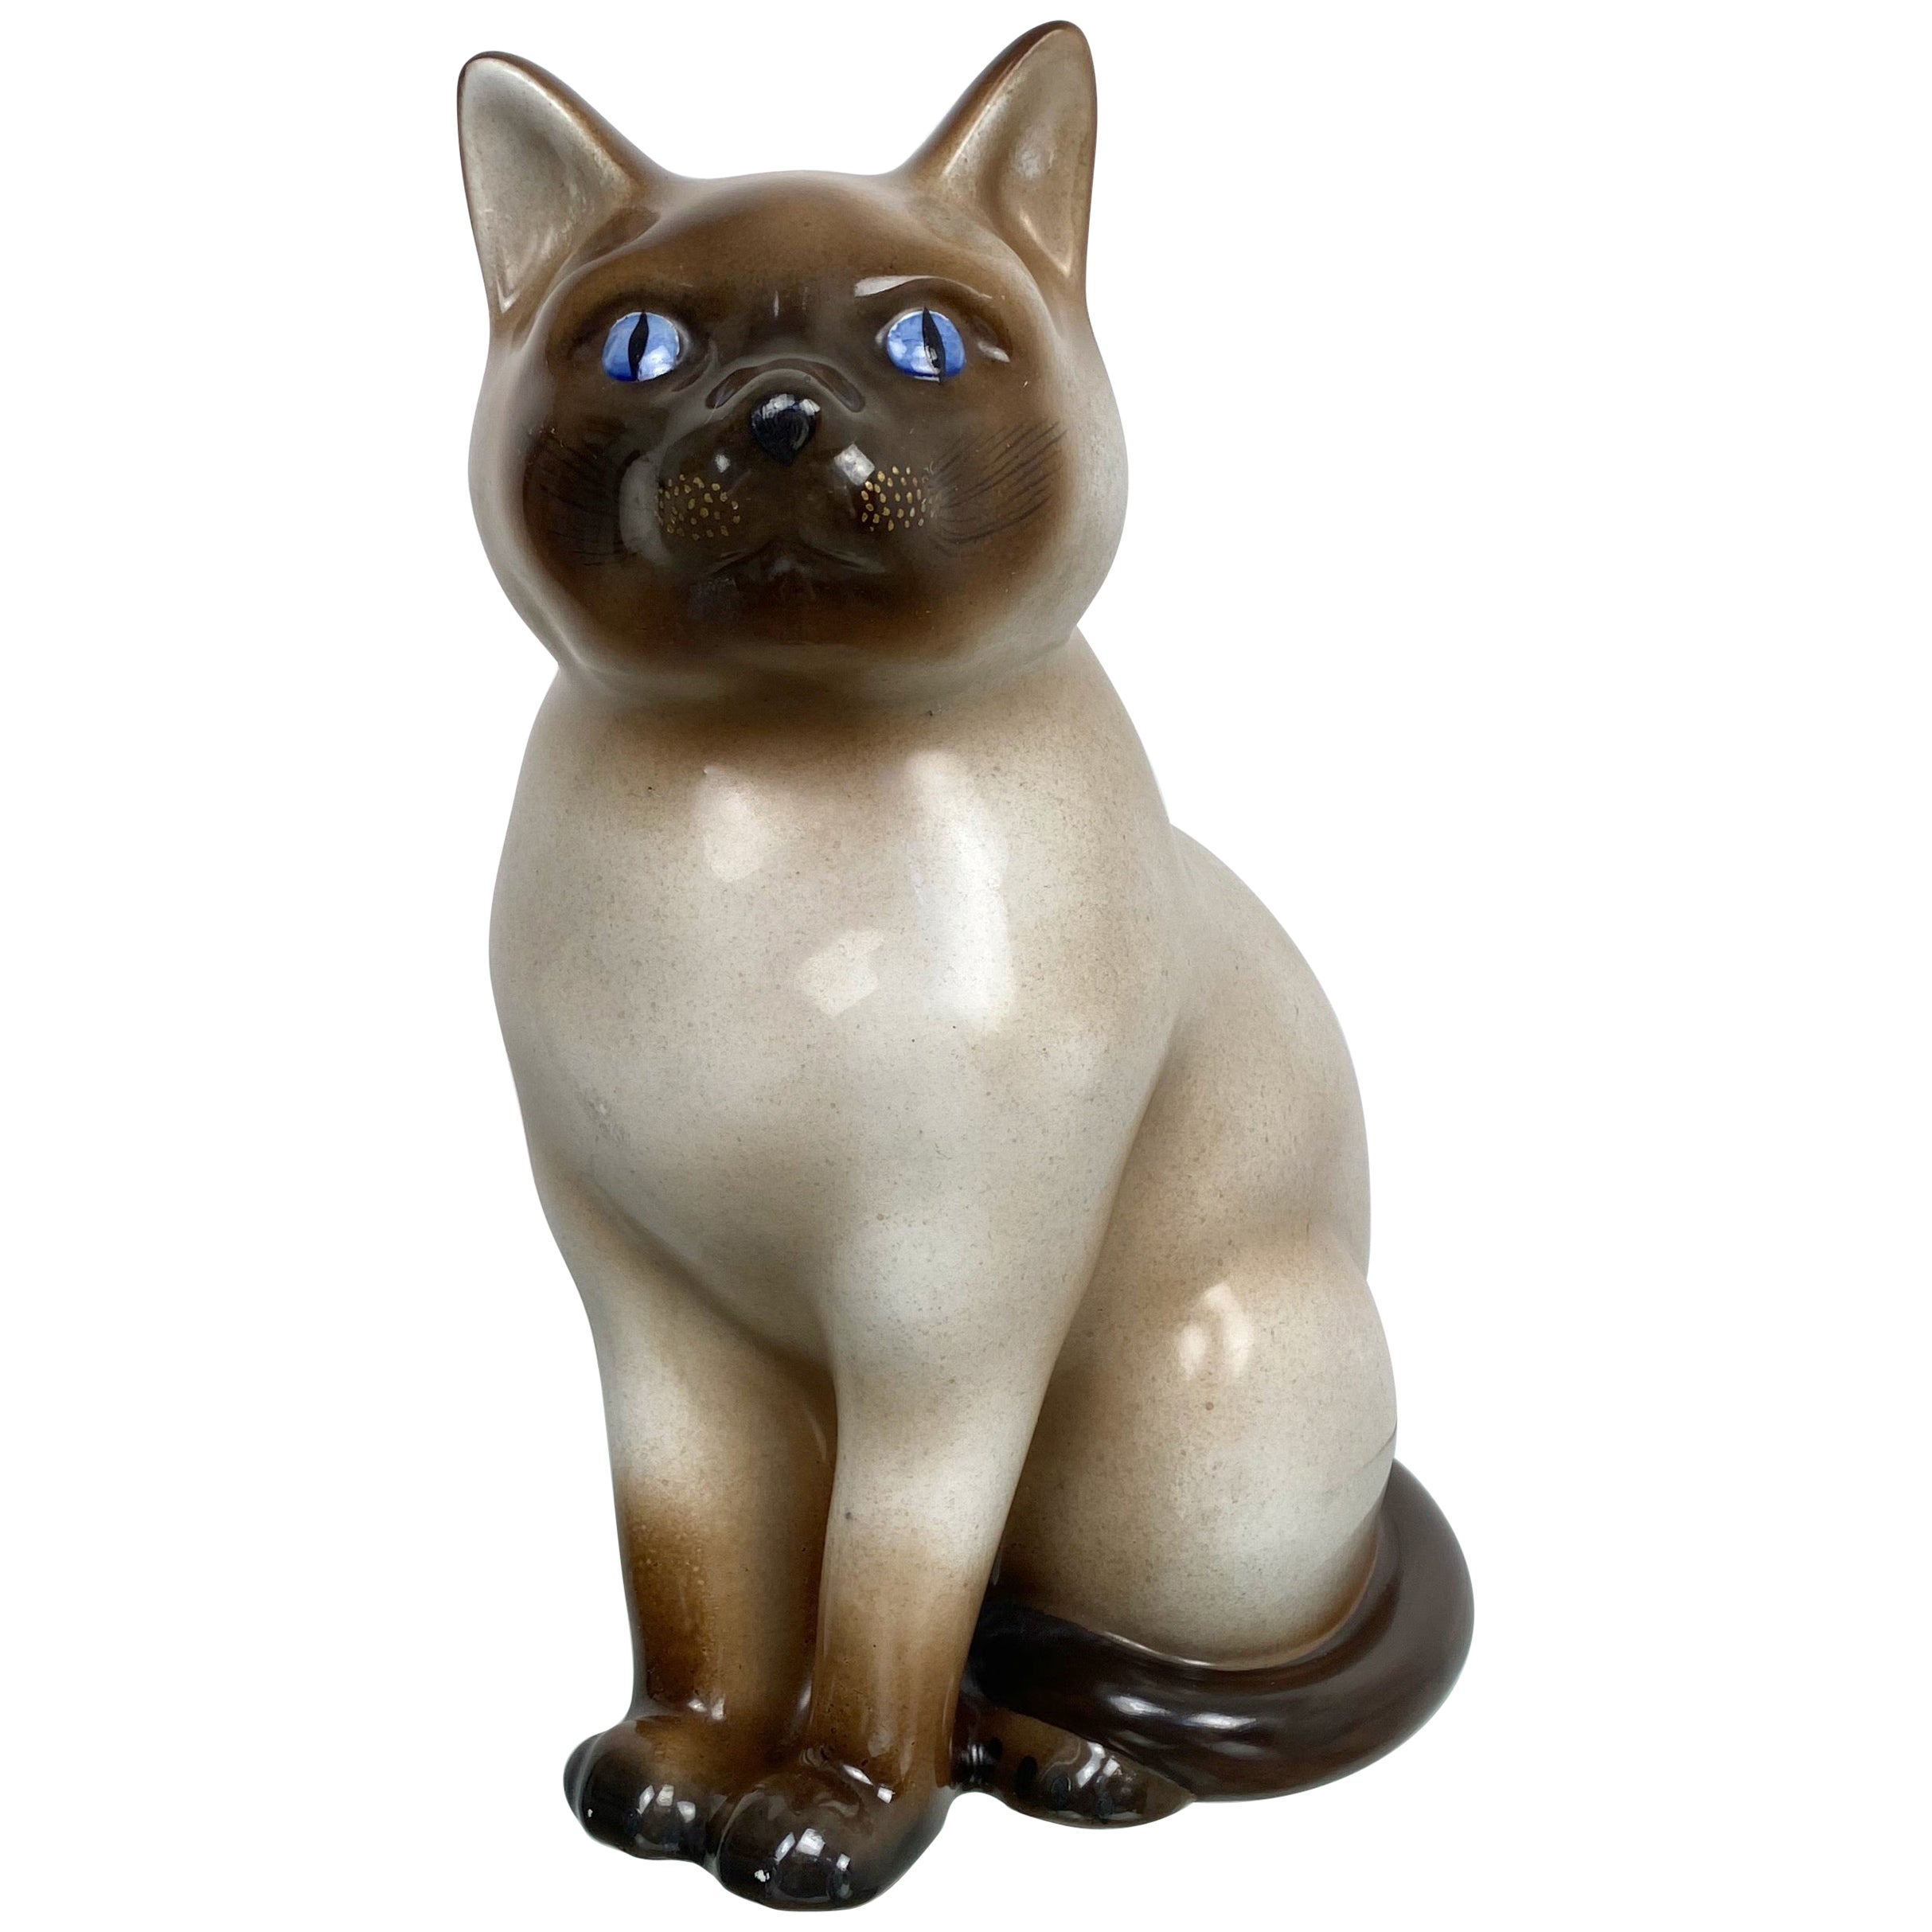 Siamese Cat Vintage Ceramic Sculpture by Piero Fornasetti 1960s Italy